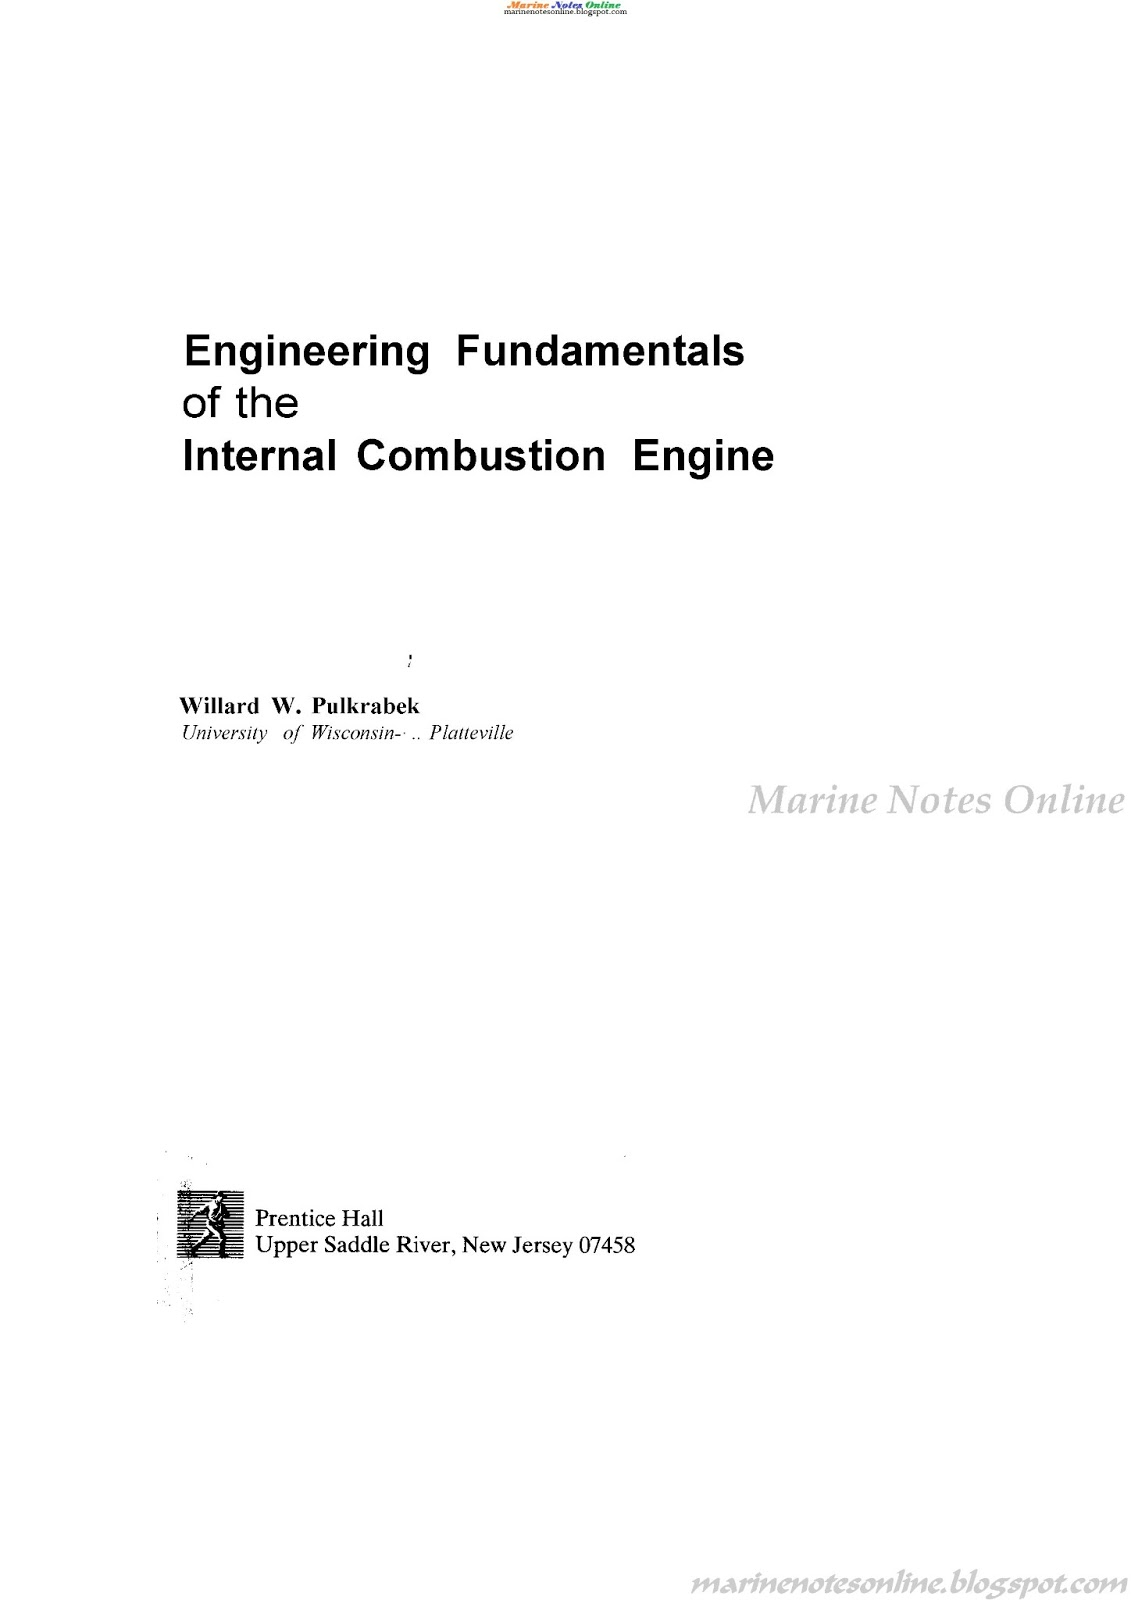 Engineering fundamentals of the internal combustion